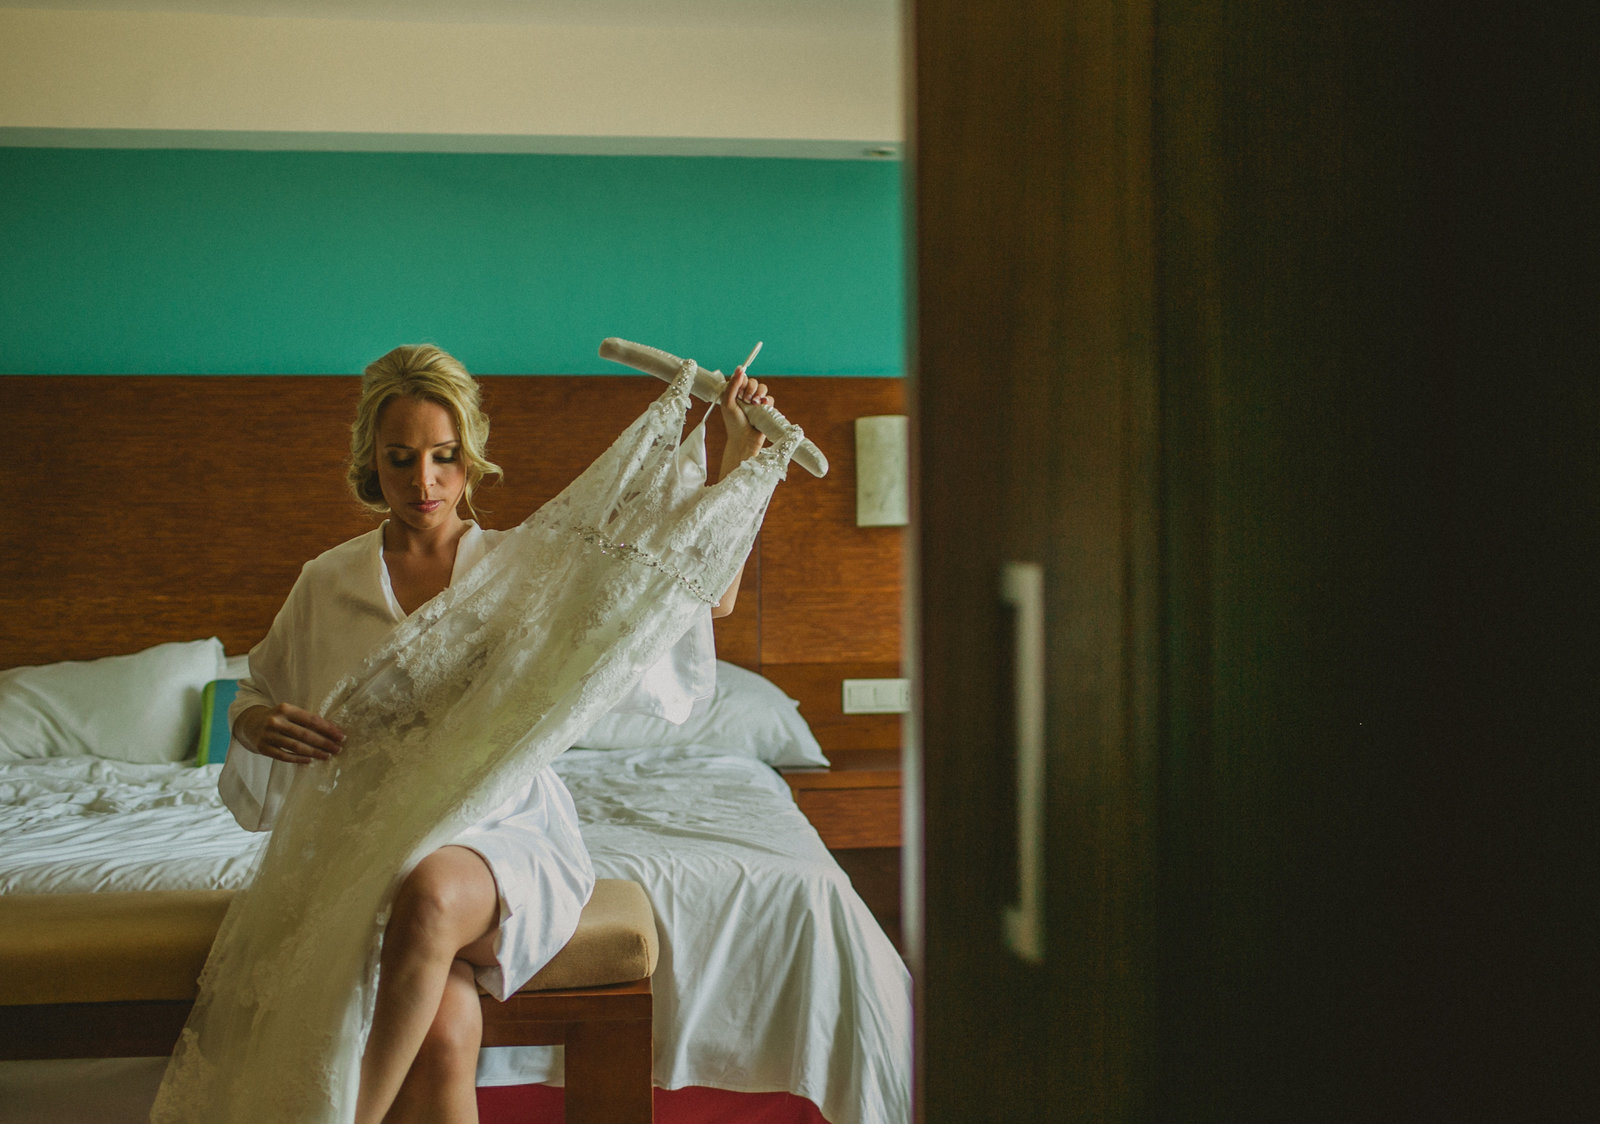 punta_cana_canada_intimate_wedding_dress_photographer_katya_nova_078